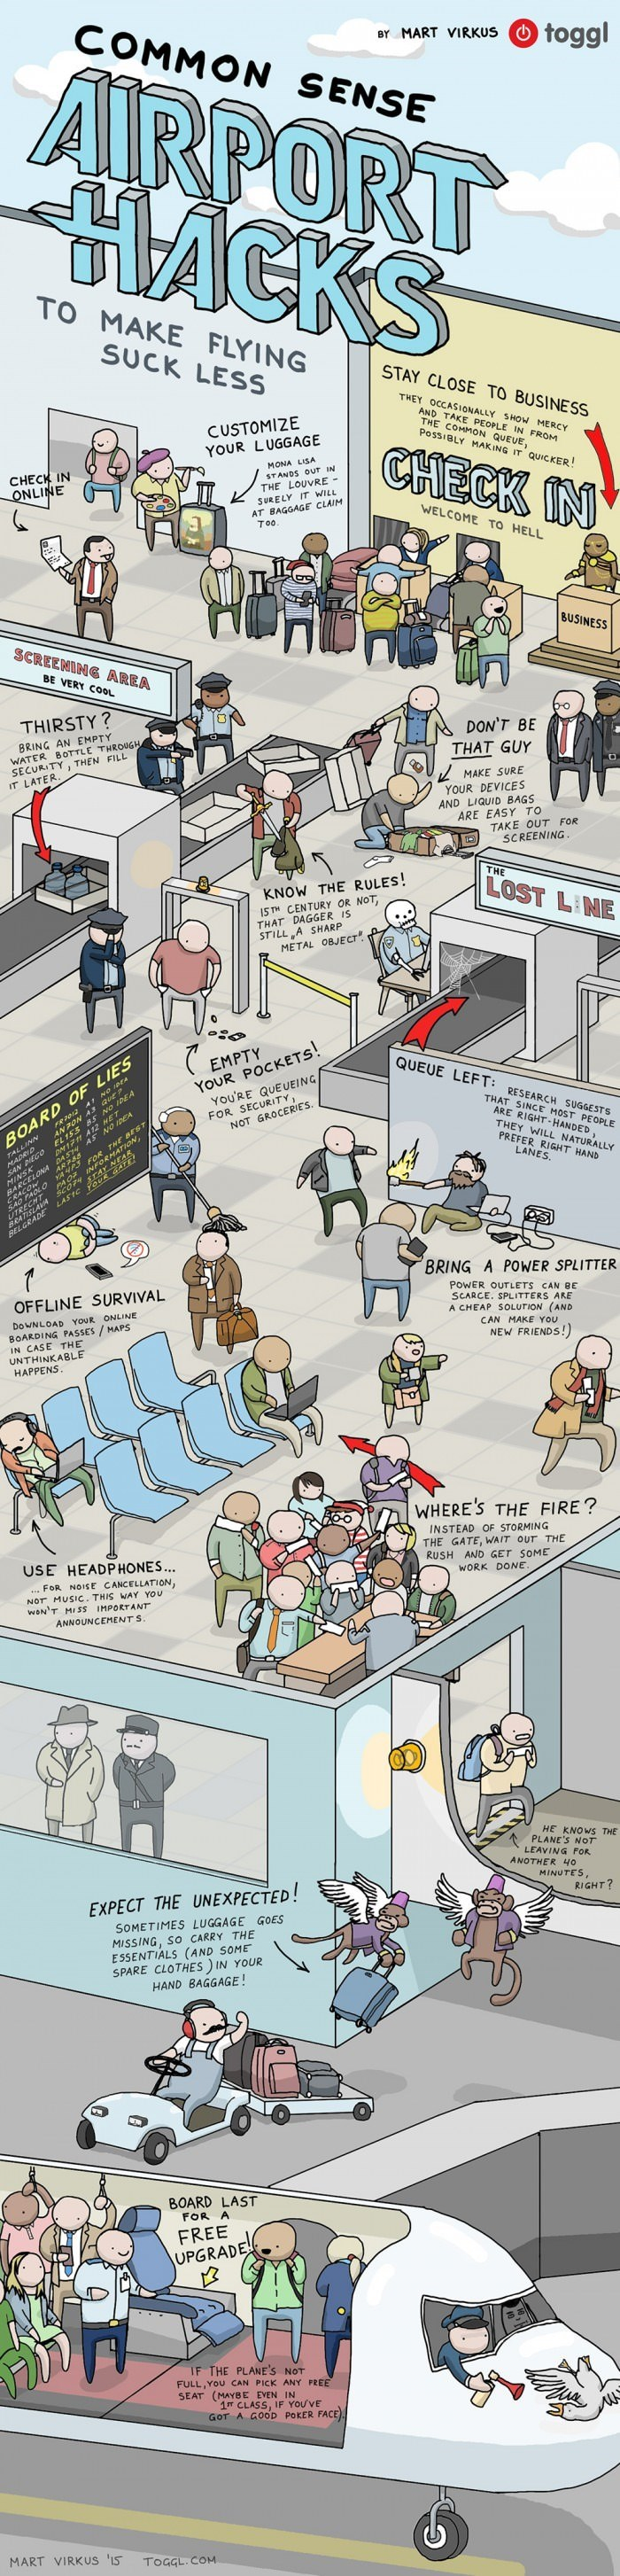 funny-web-comics-necessary-to-read-airport-hacks